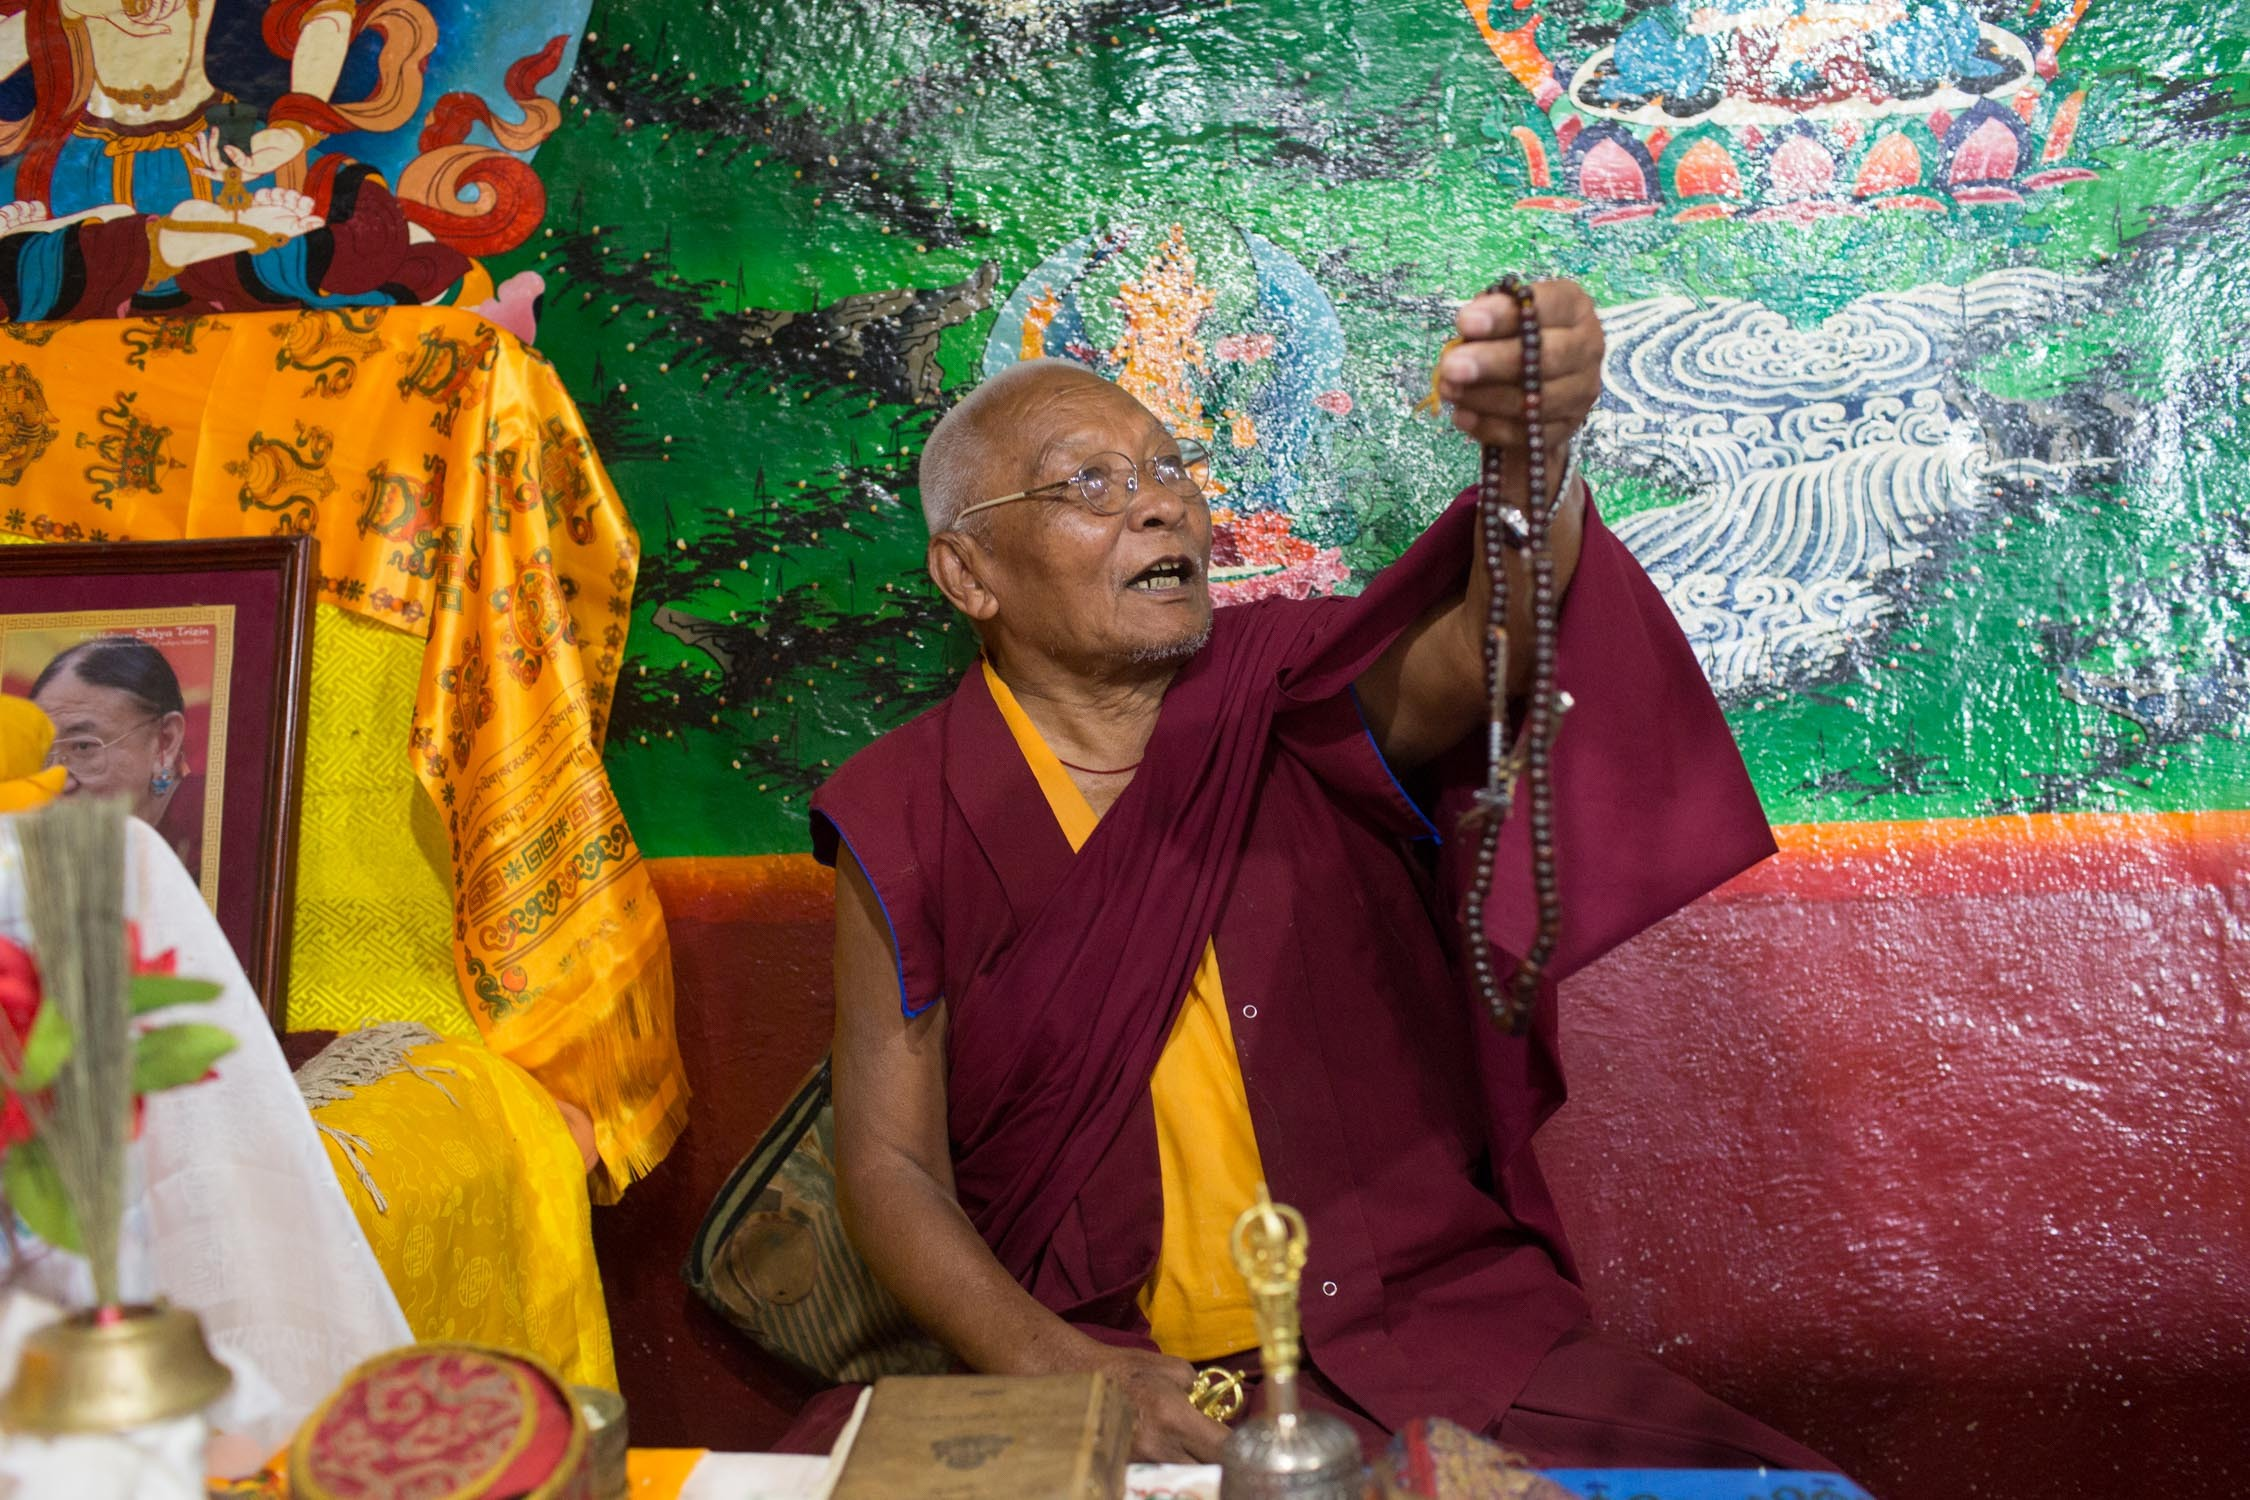 Guru Kunga Dupshang Lama of Awalokeshower Monastery explains the importance of the prayer beads in Buddhism.